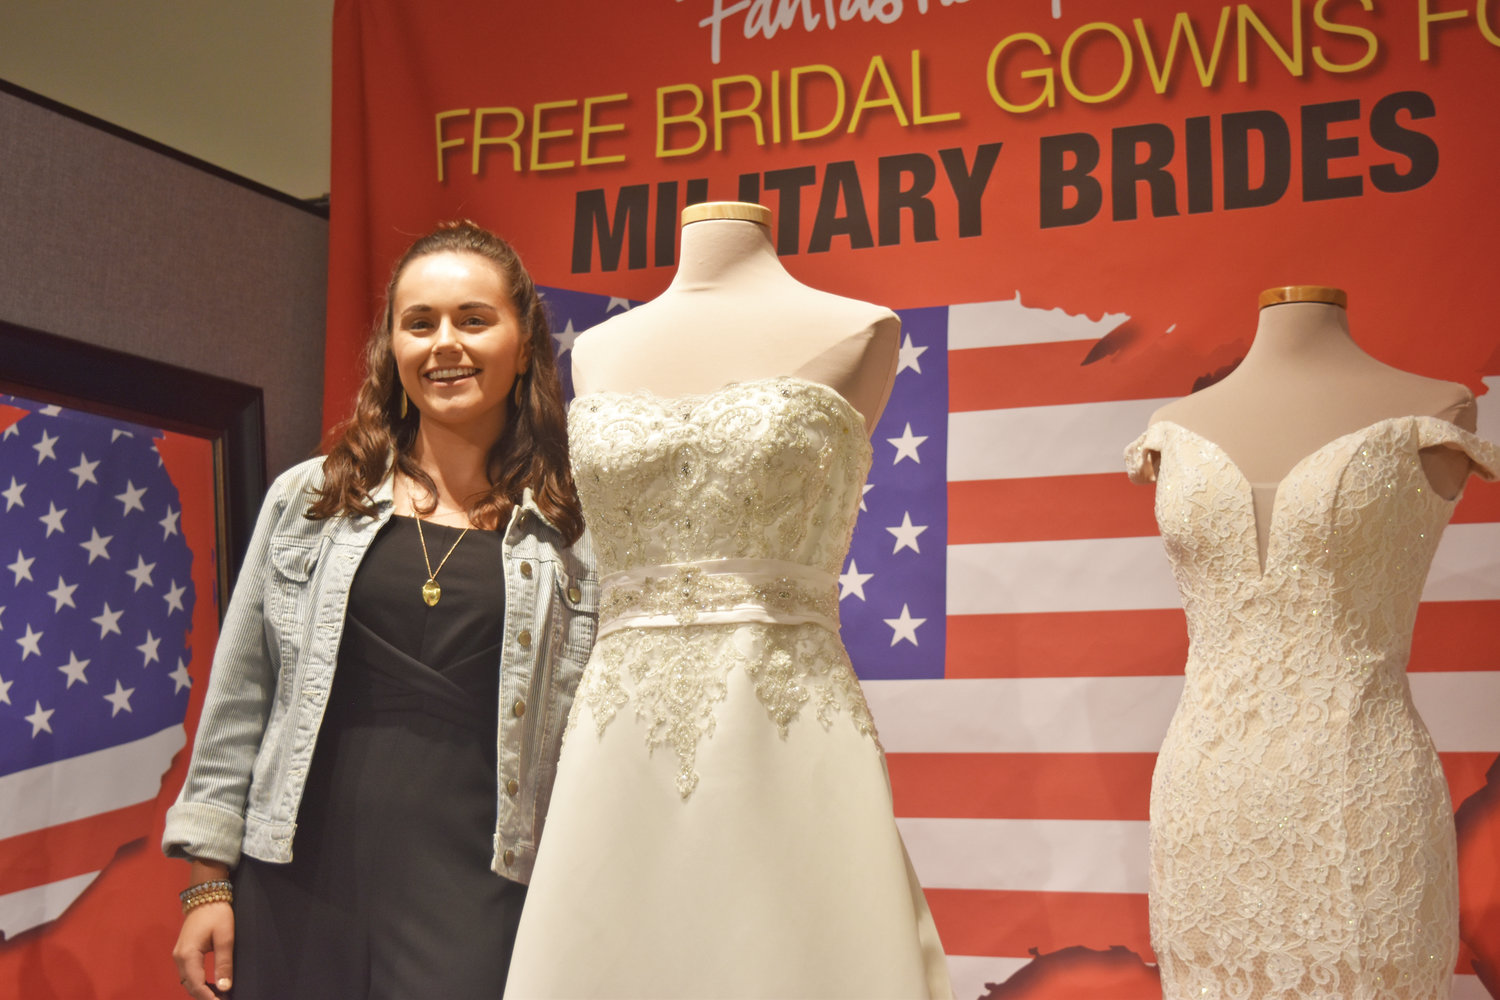 Holly Reed, Fantastic Finds marketing manager, poses next to a giveaway dress to a military bride.